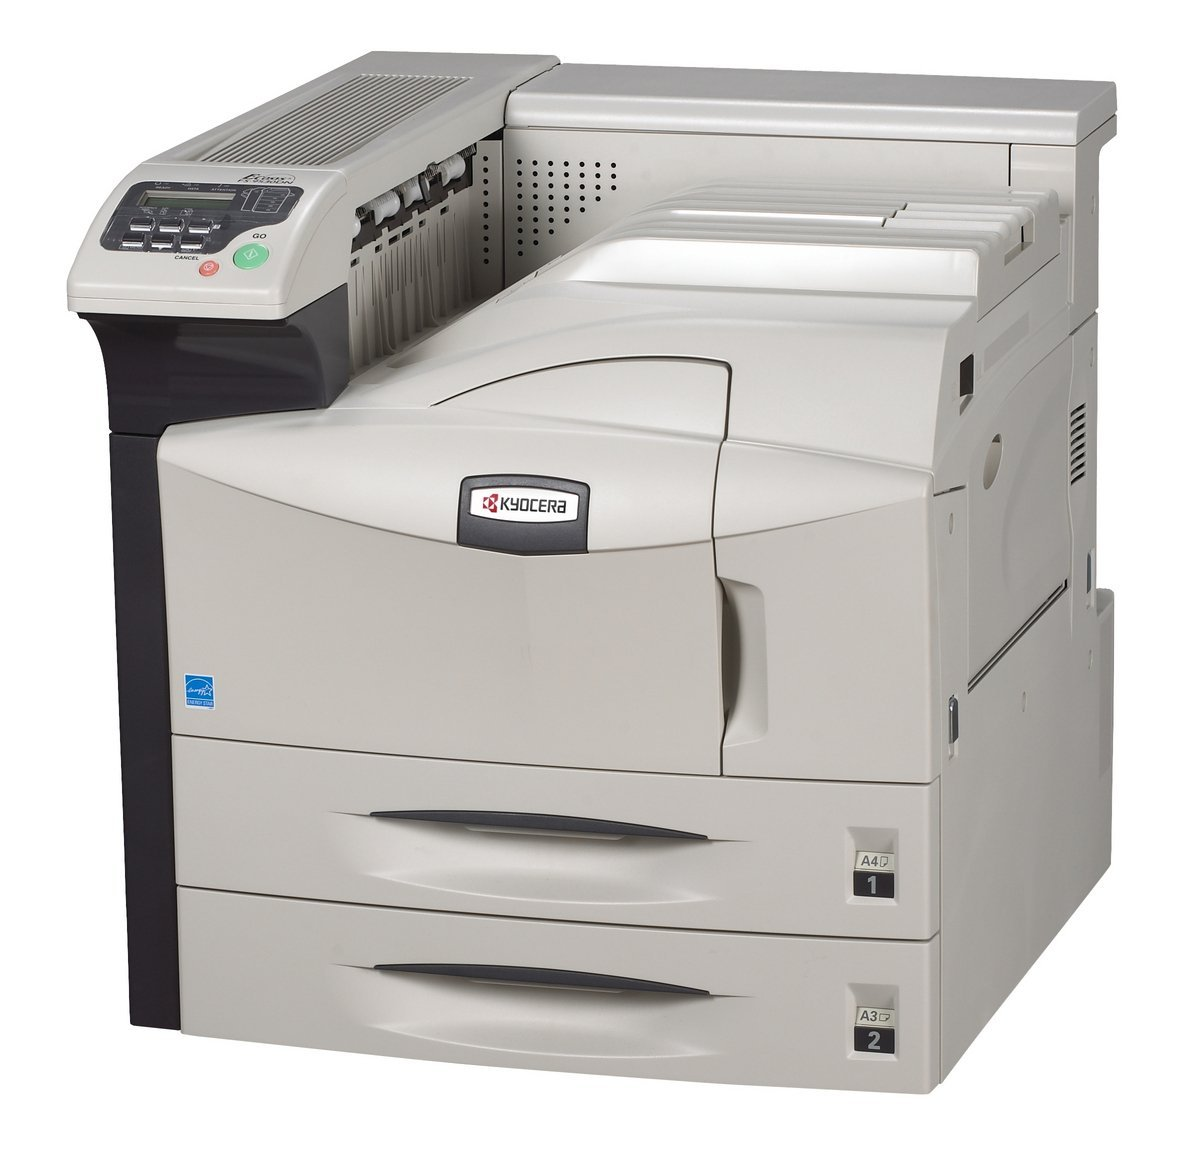 Kyocera 1102G12US0 model FS-9530DN 51 PPM B/W Black & White Laser Printer, Up to 51 ppm - B/W - A4 (8.25 in x 11.7 in), Up to 26 ppm - B/W - A3 (11.7 in x 16.5 in), Status LCD Built-in Devices, Wired Connectivity Technology, Parallel, USB, Ethernet 10/100Base-TX Interface, 1800 dpi x 600 dpi Max